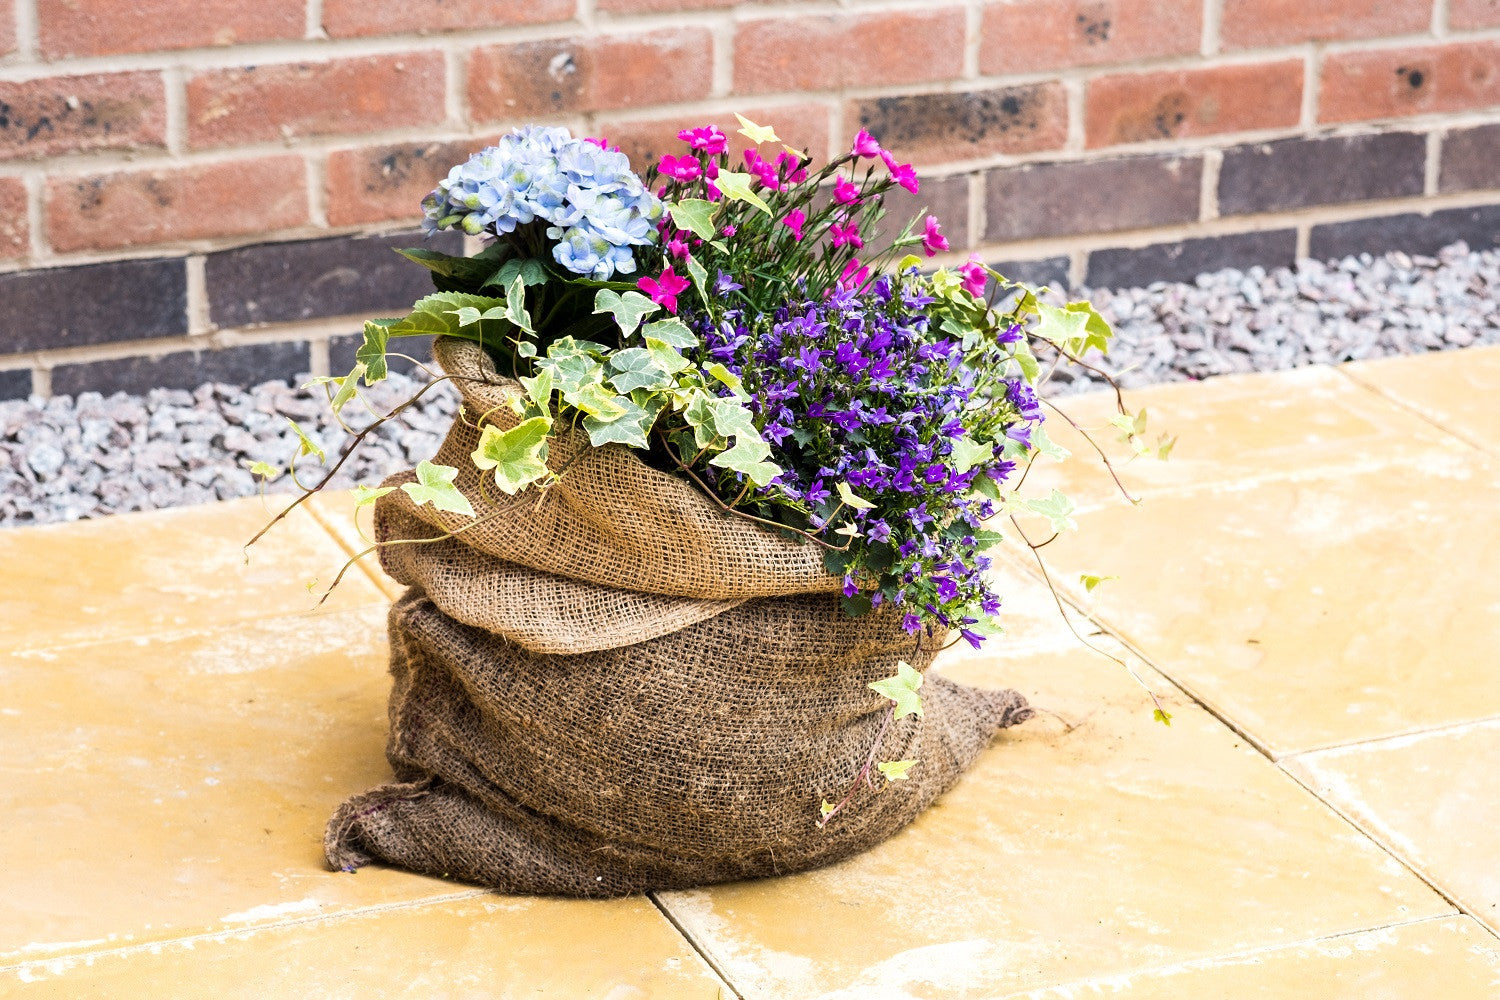 Lazy Flora hessian sack planter